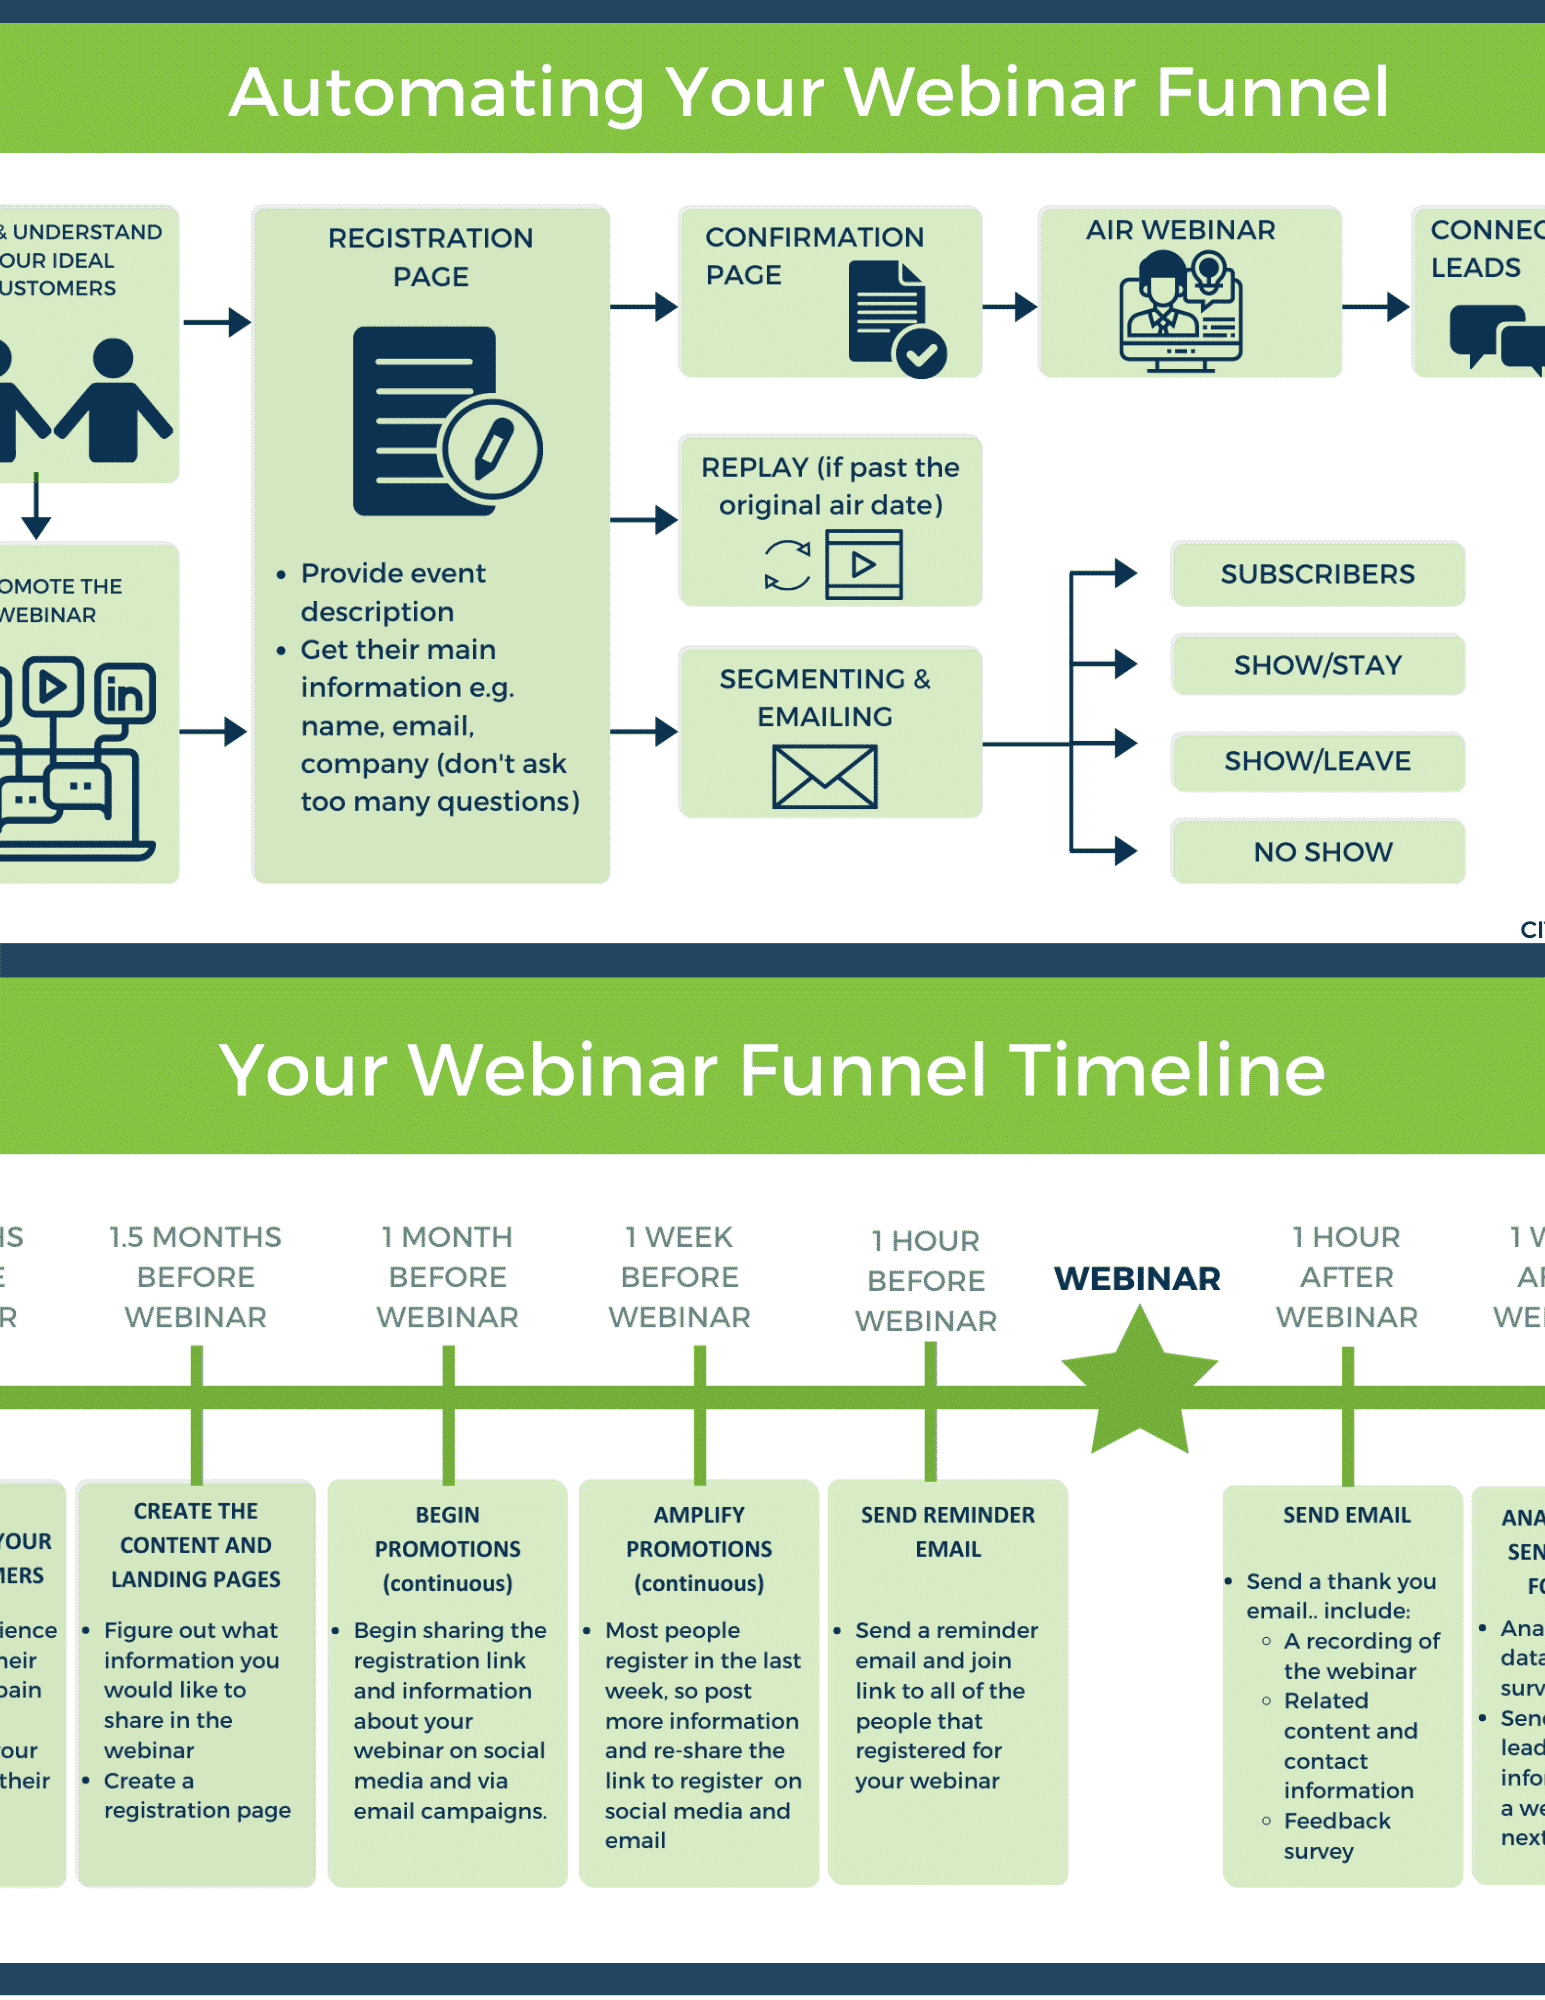 Download the automation process and webinar timeline